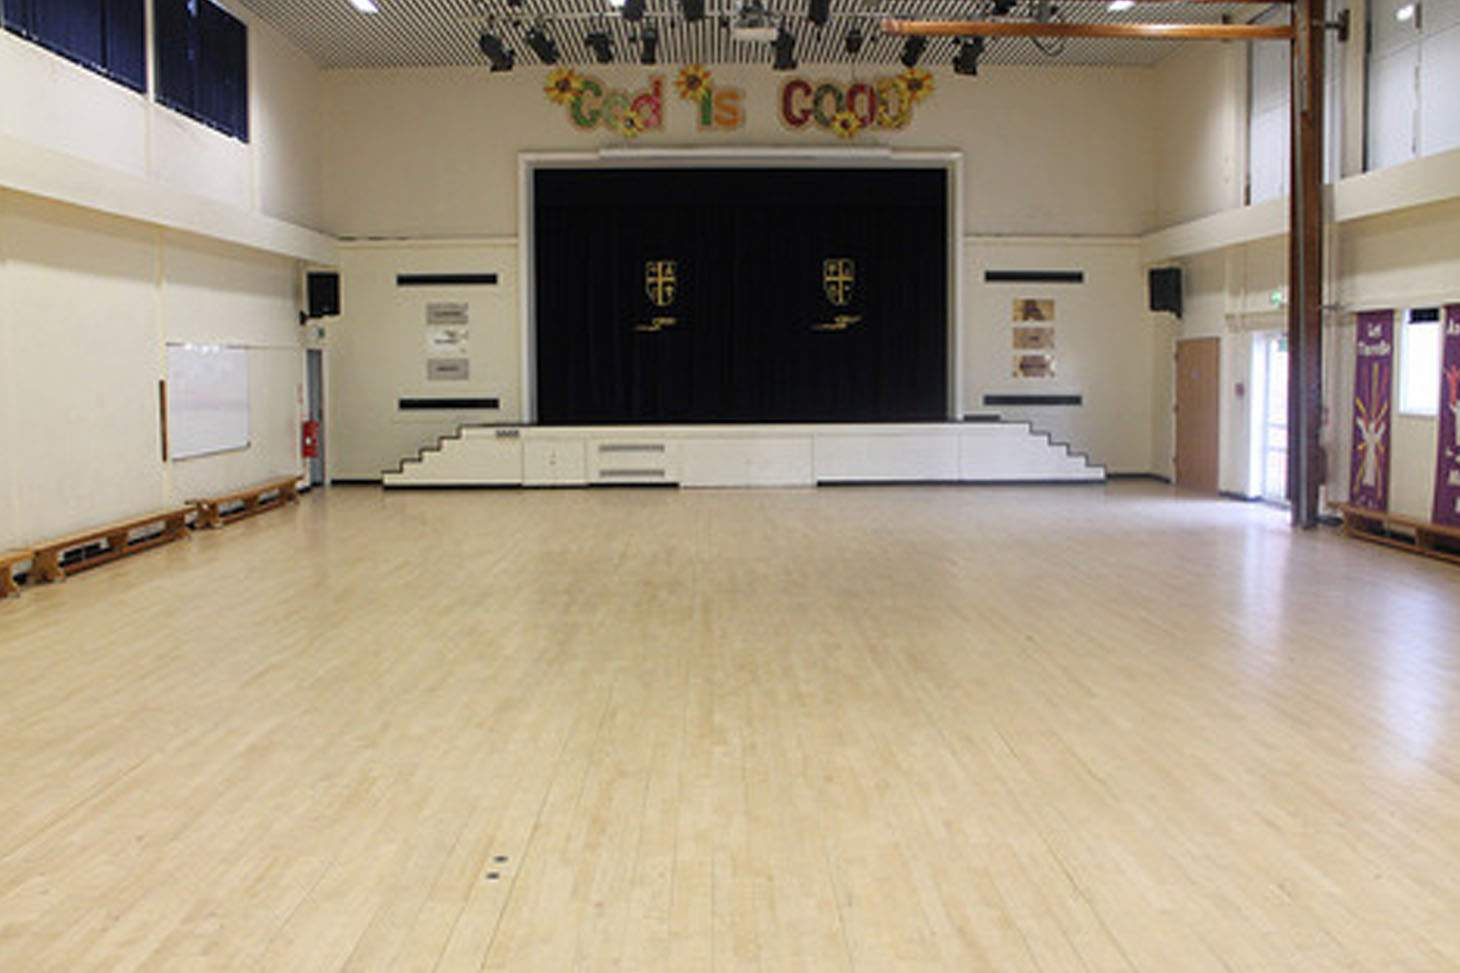 St. James's C of E High School Theatre space hire